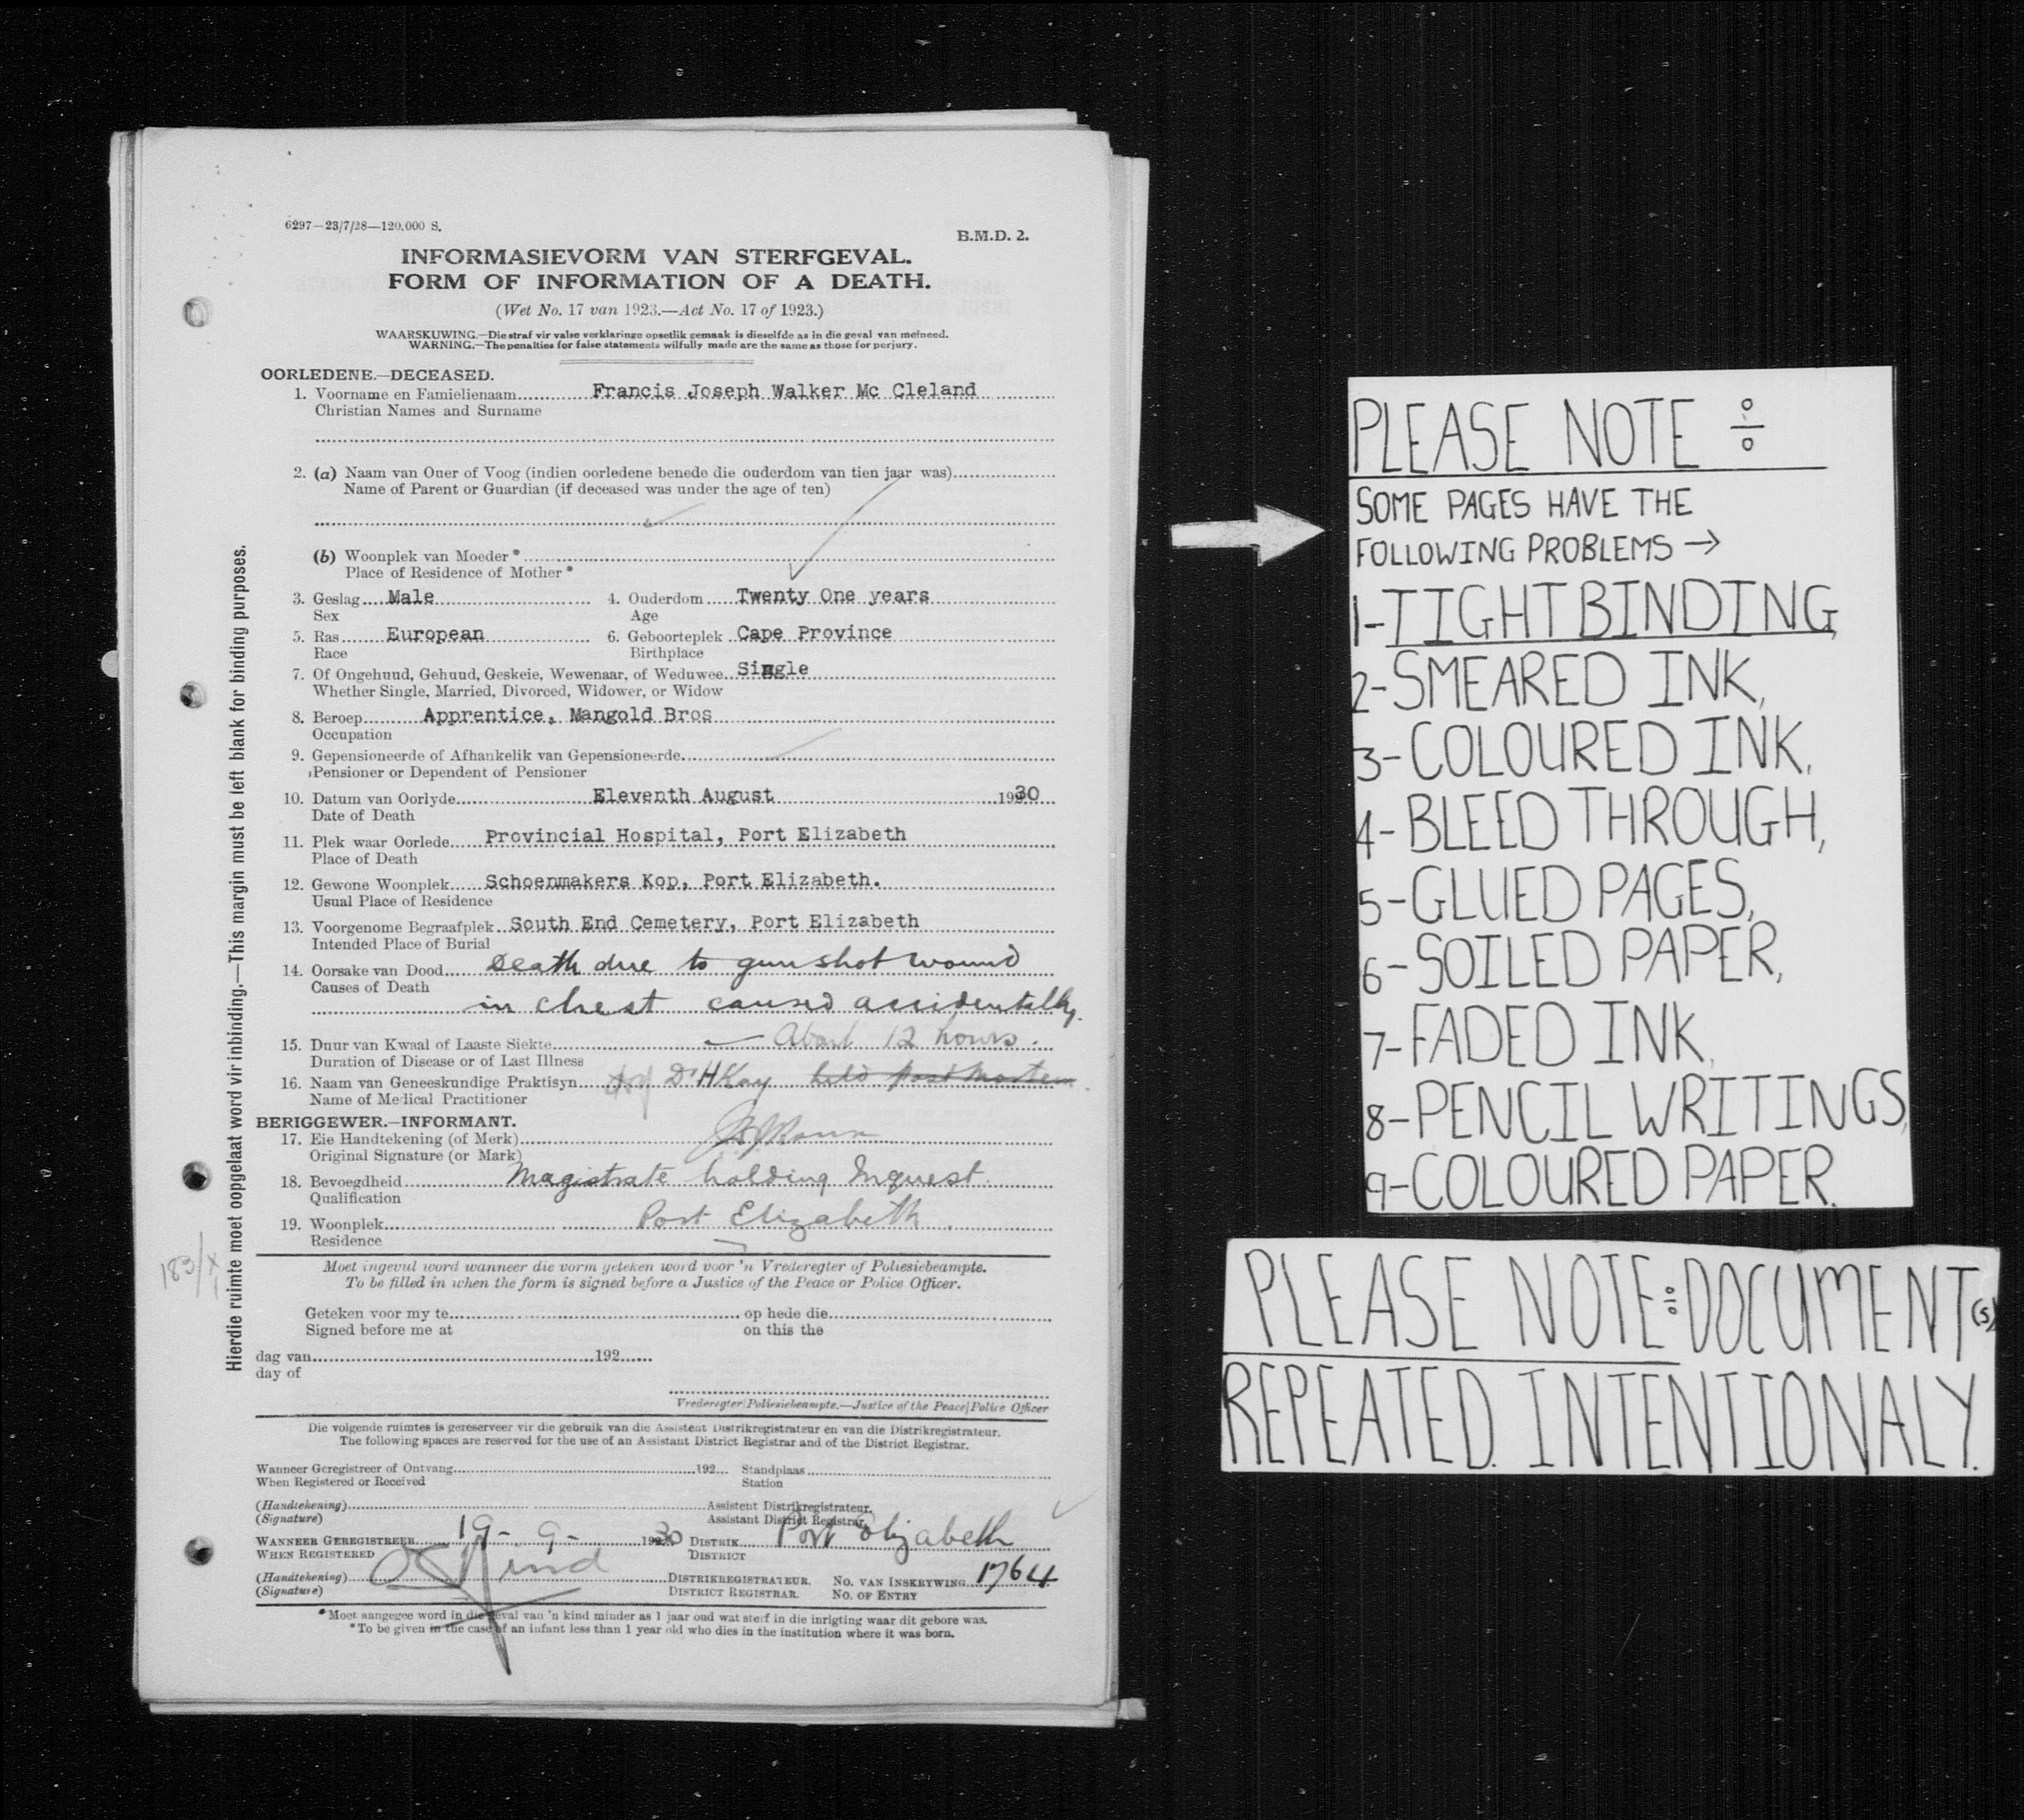 Death Certificate of Francis McCleland in 1930